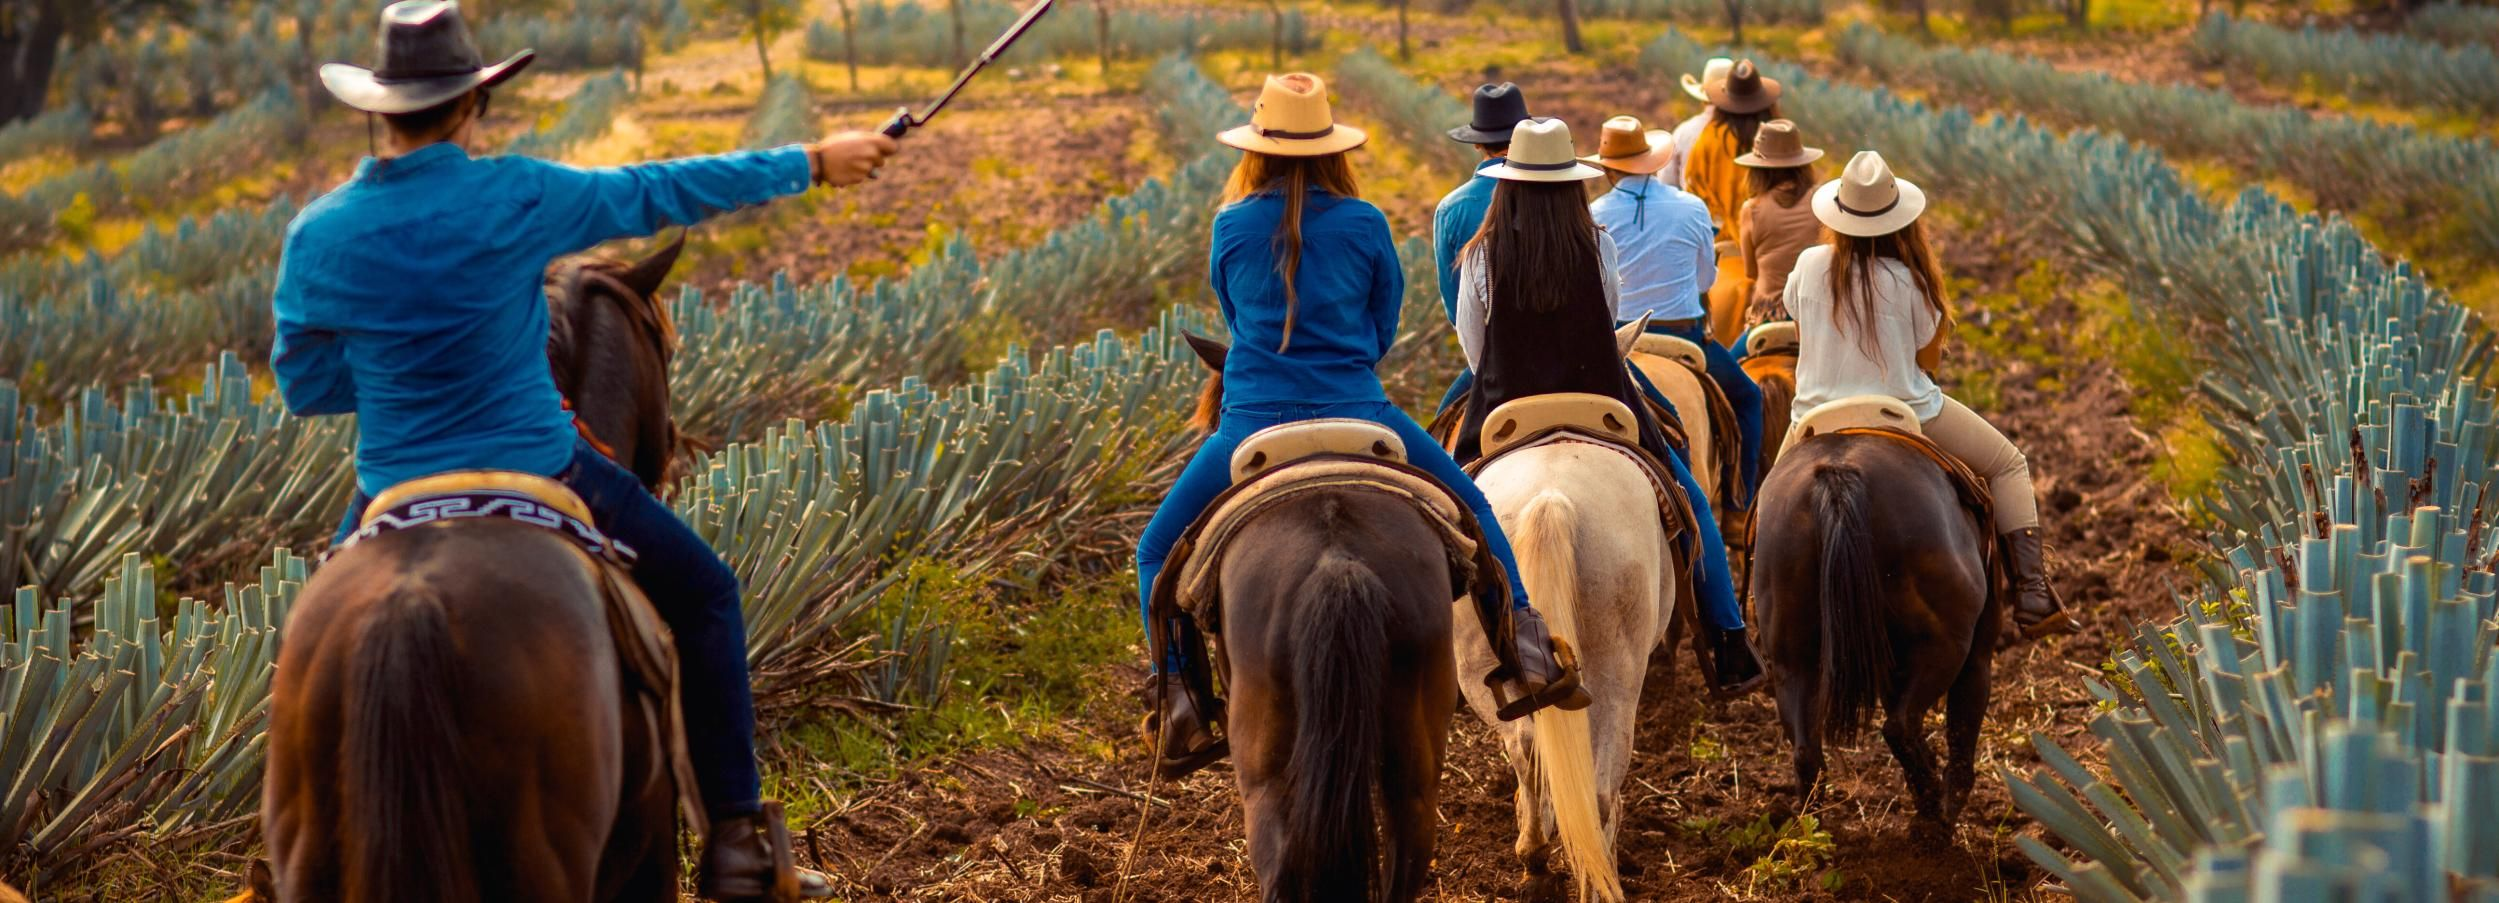 Tequila Town: Horseback Riding in Agave Fields